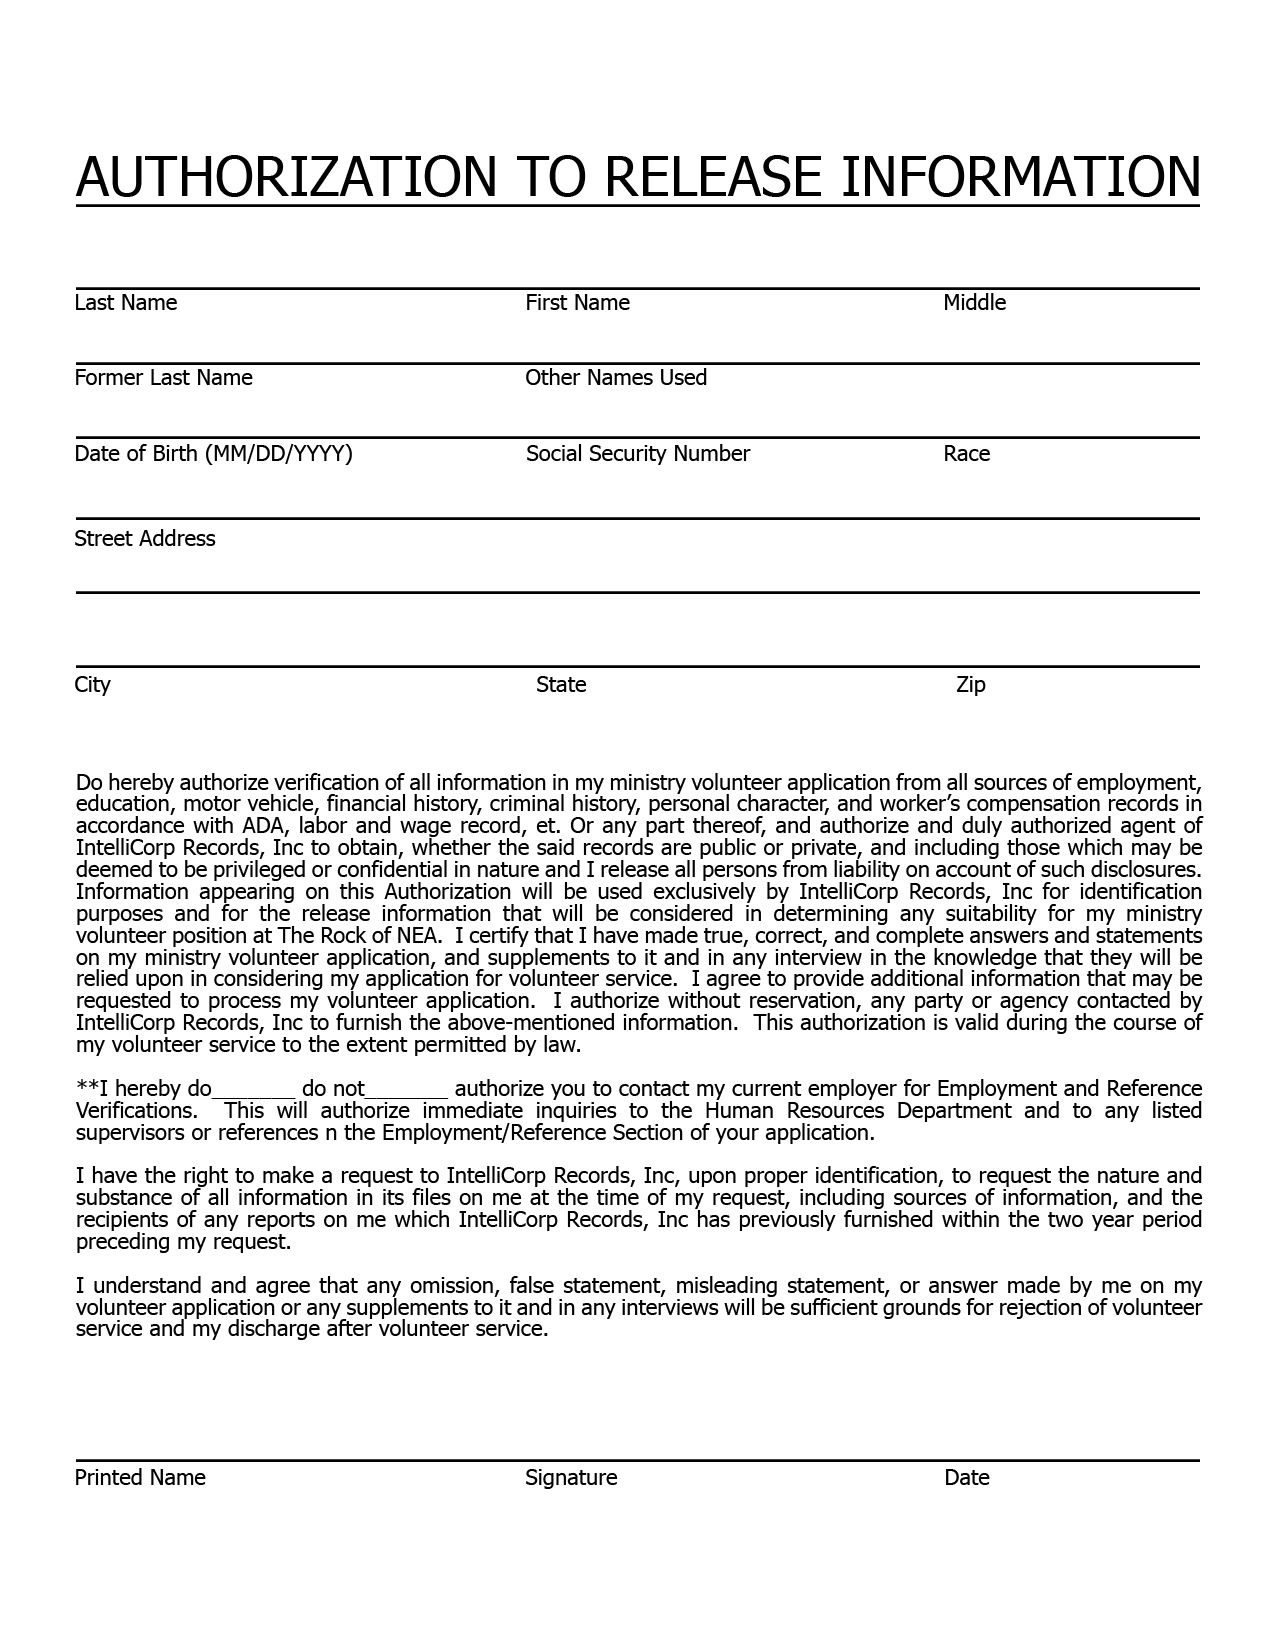 Church Nursery Background Check Form